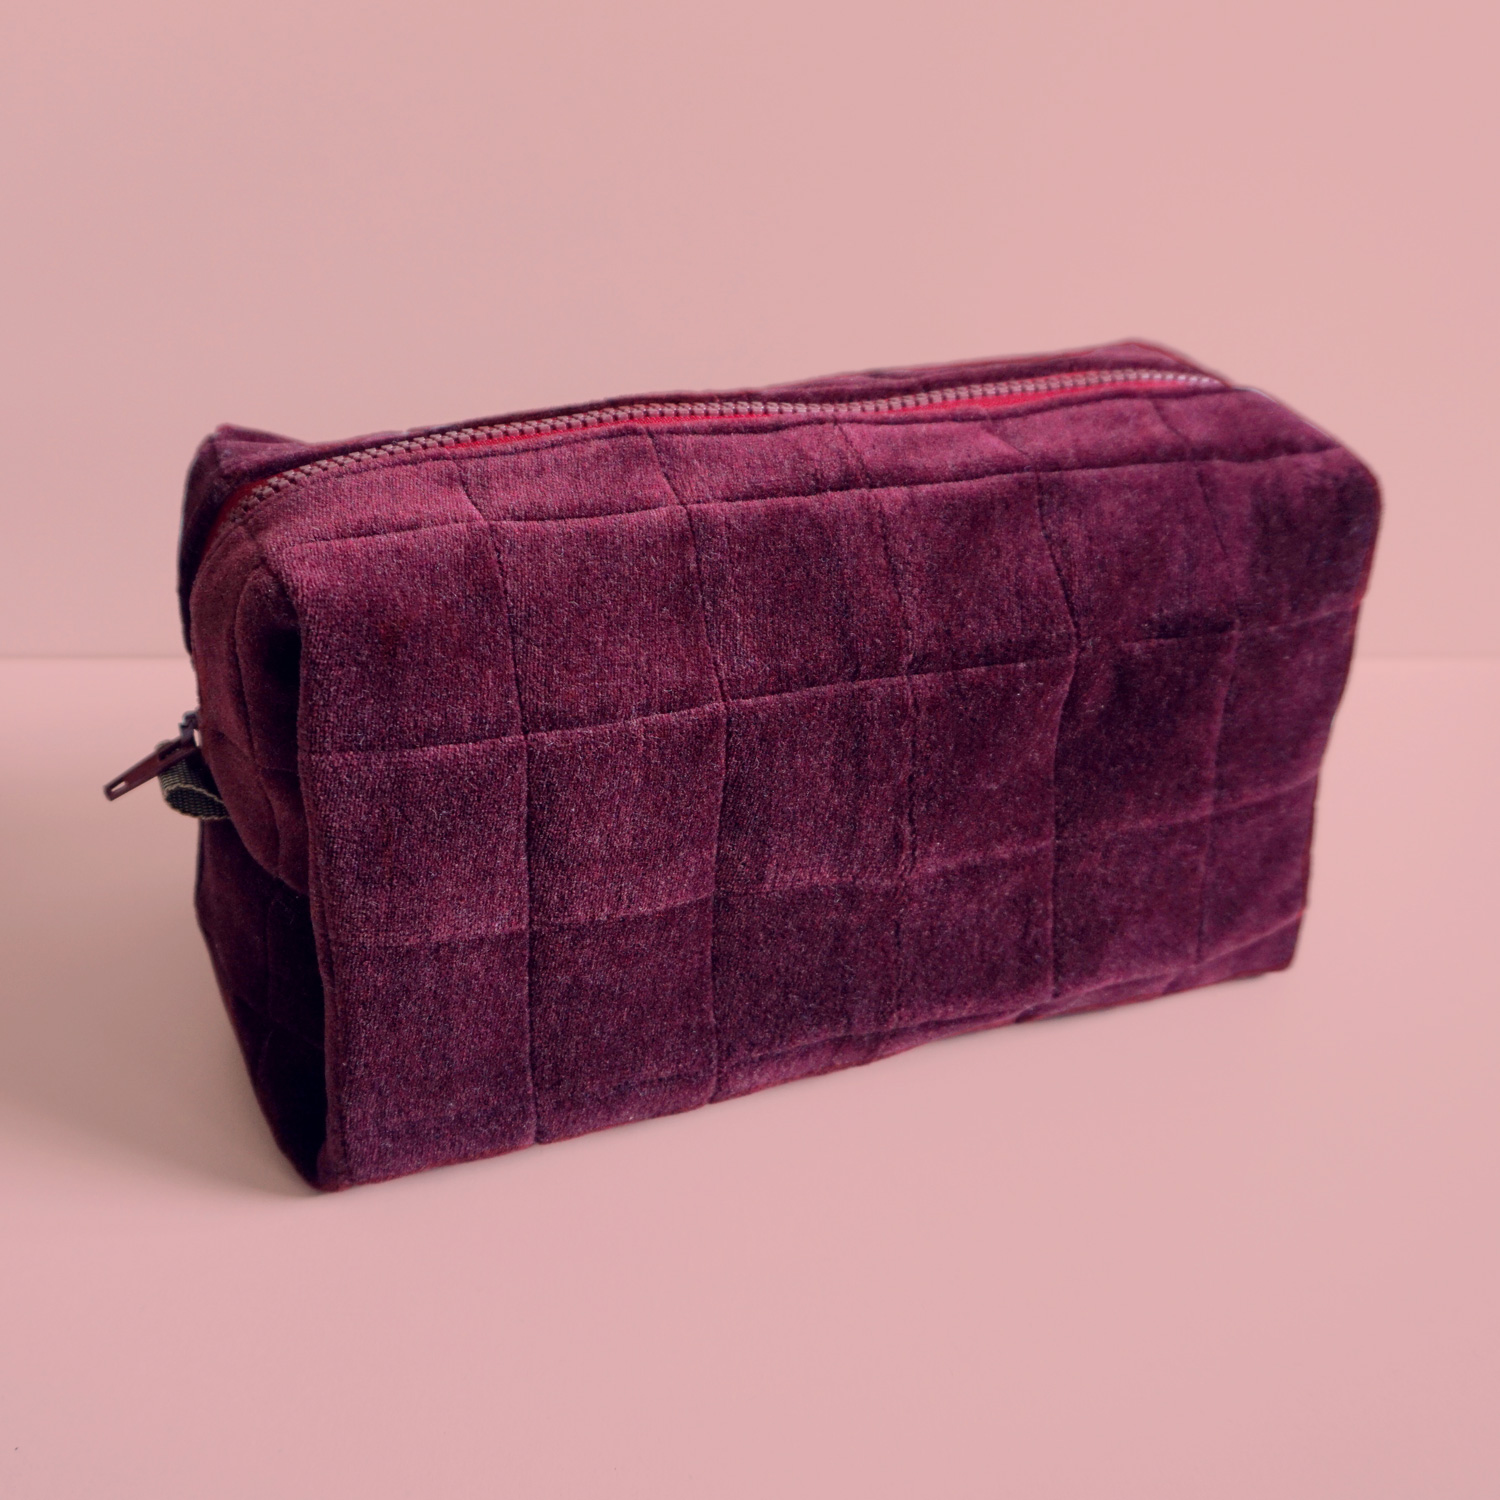 Luxurious quilted boxed pouches, that will hold your essential travel toiletries, current knitting project or drawing supplies.